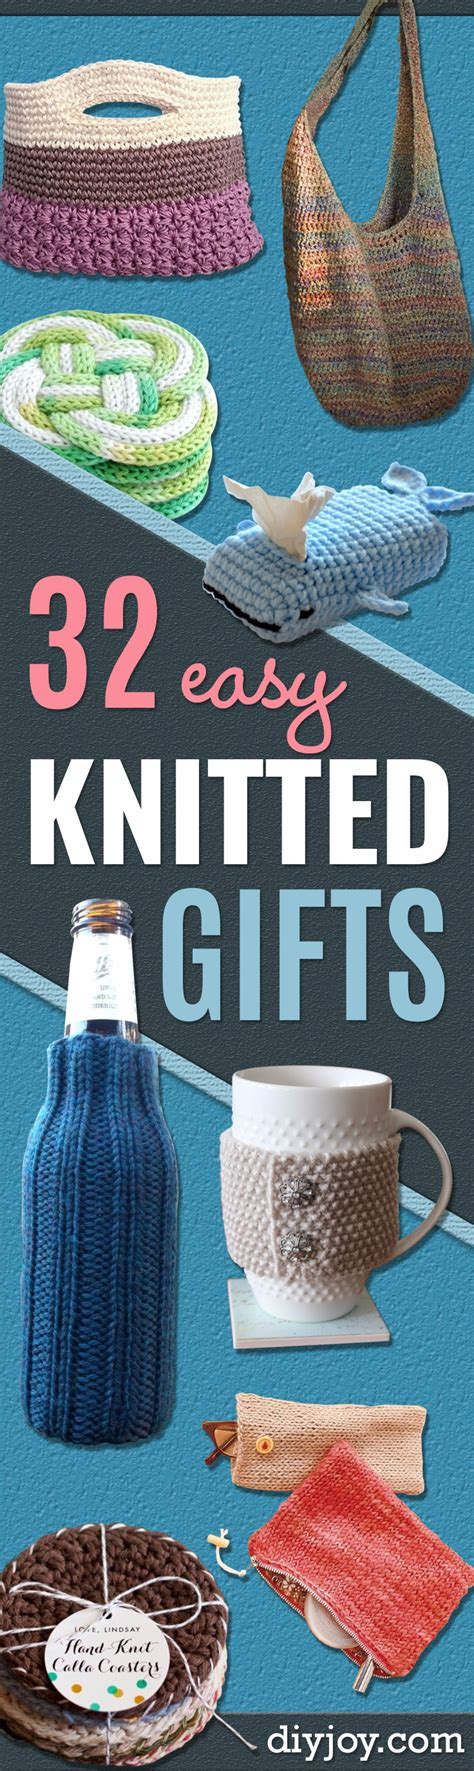 simple knitted gifts 32 easy knitted gifts that you can make in hours diy